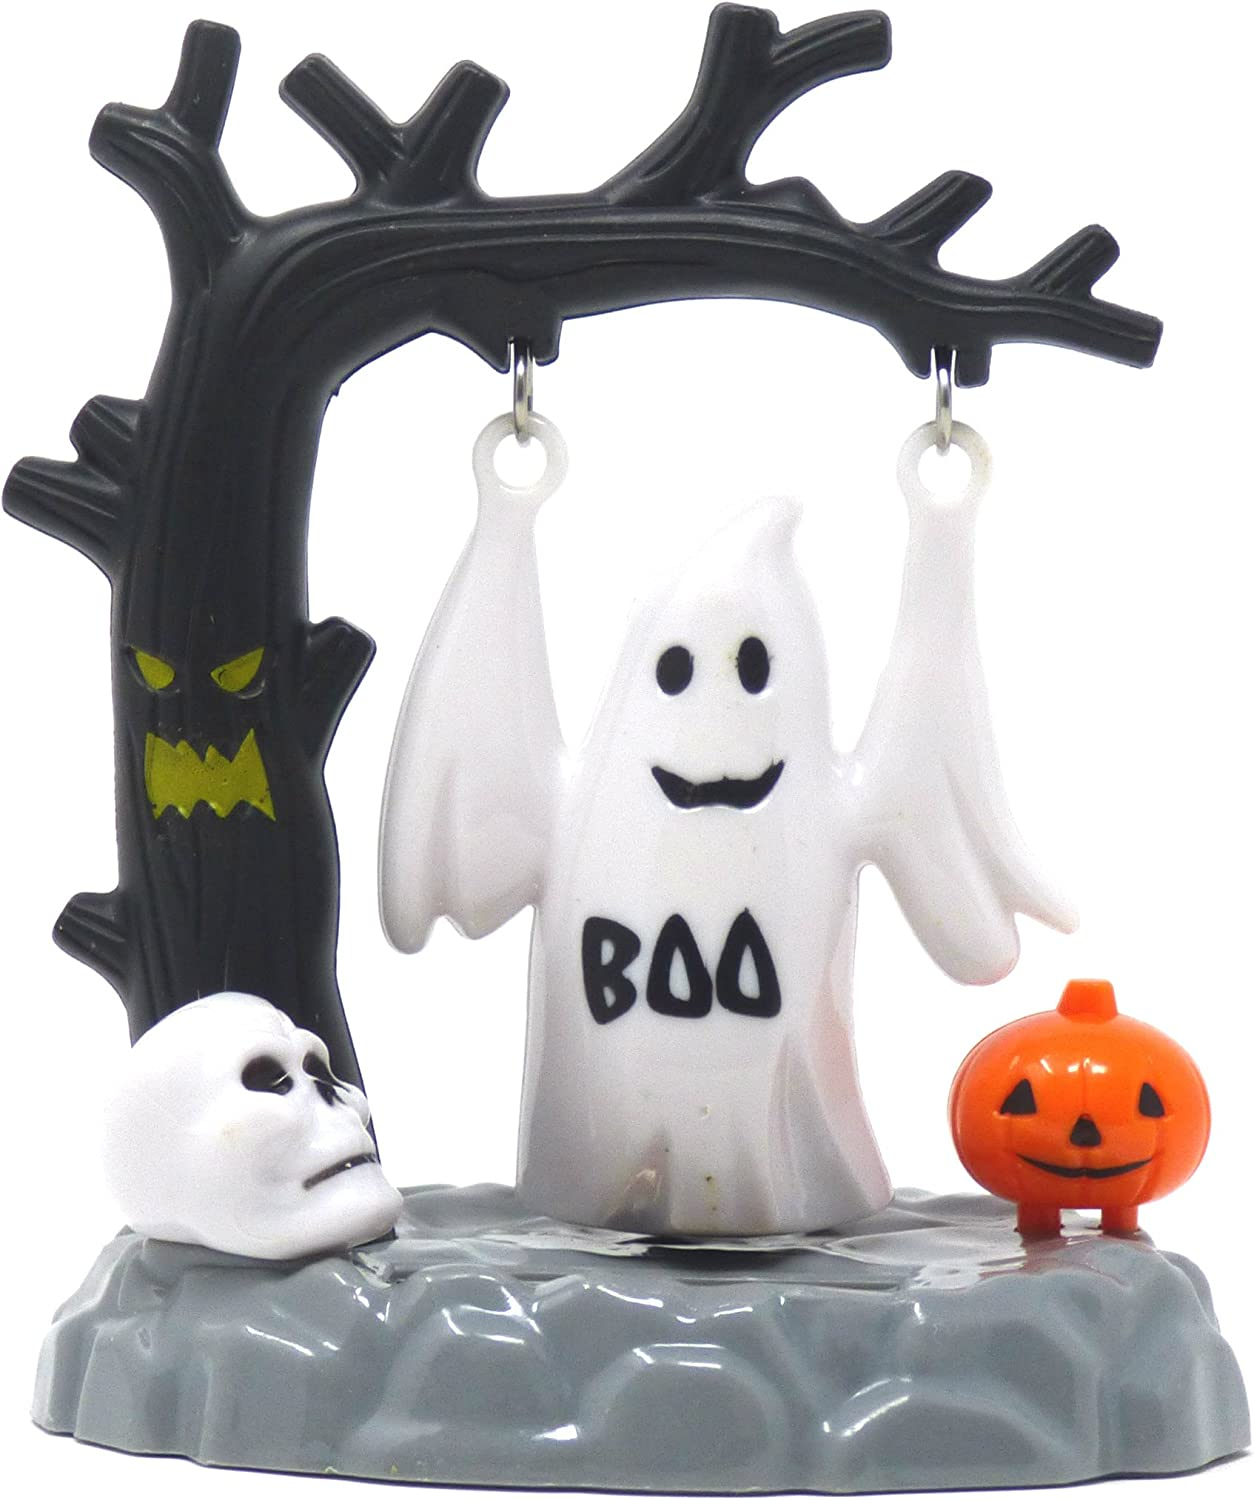 BRAND NEW PERFECT FOR HALLOWEEN!!! SOLAR POWERED SWINGING GHOST